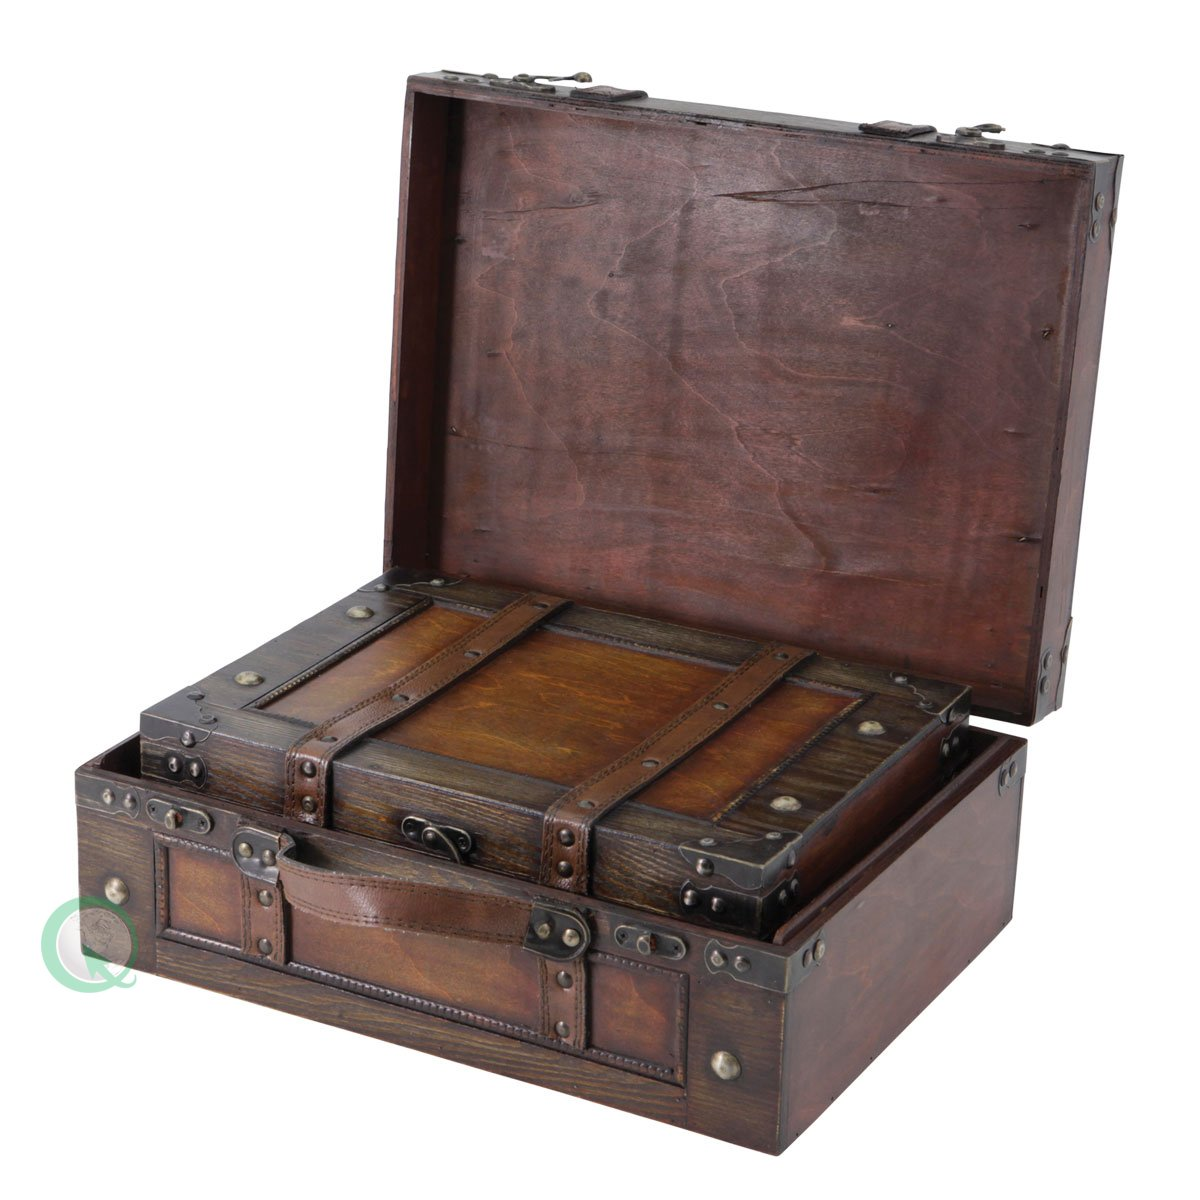 Amazon.com: Vintiquewise(TM) Old Style Suitcase/Decorative Box ...